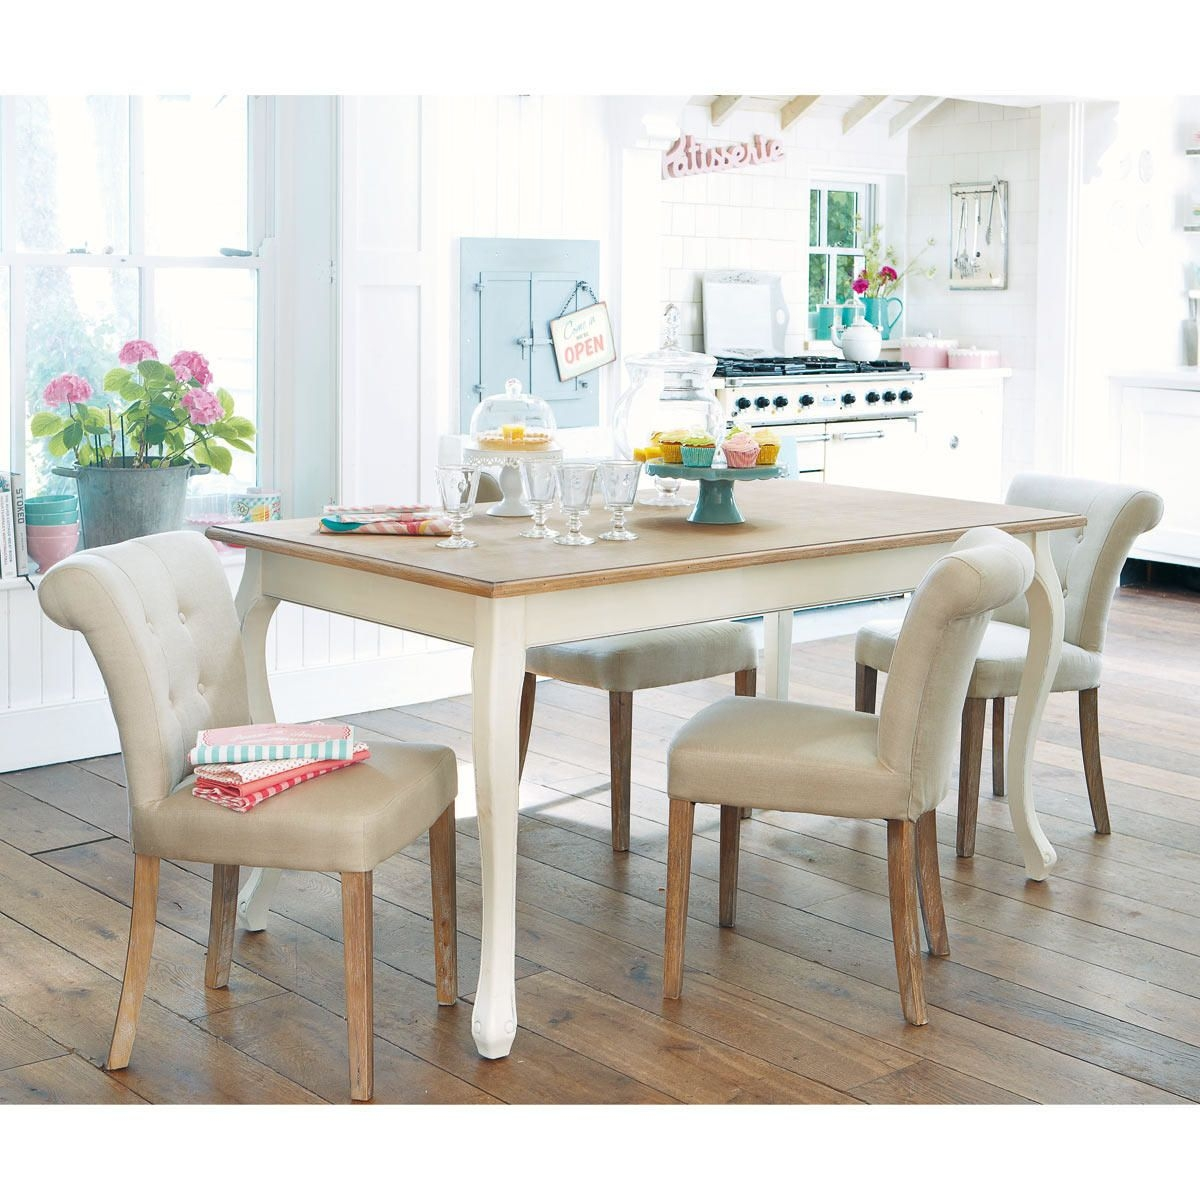 Dining Table in Cream L160 in 2020  Wooden dining tables